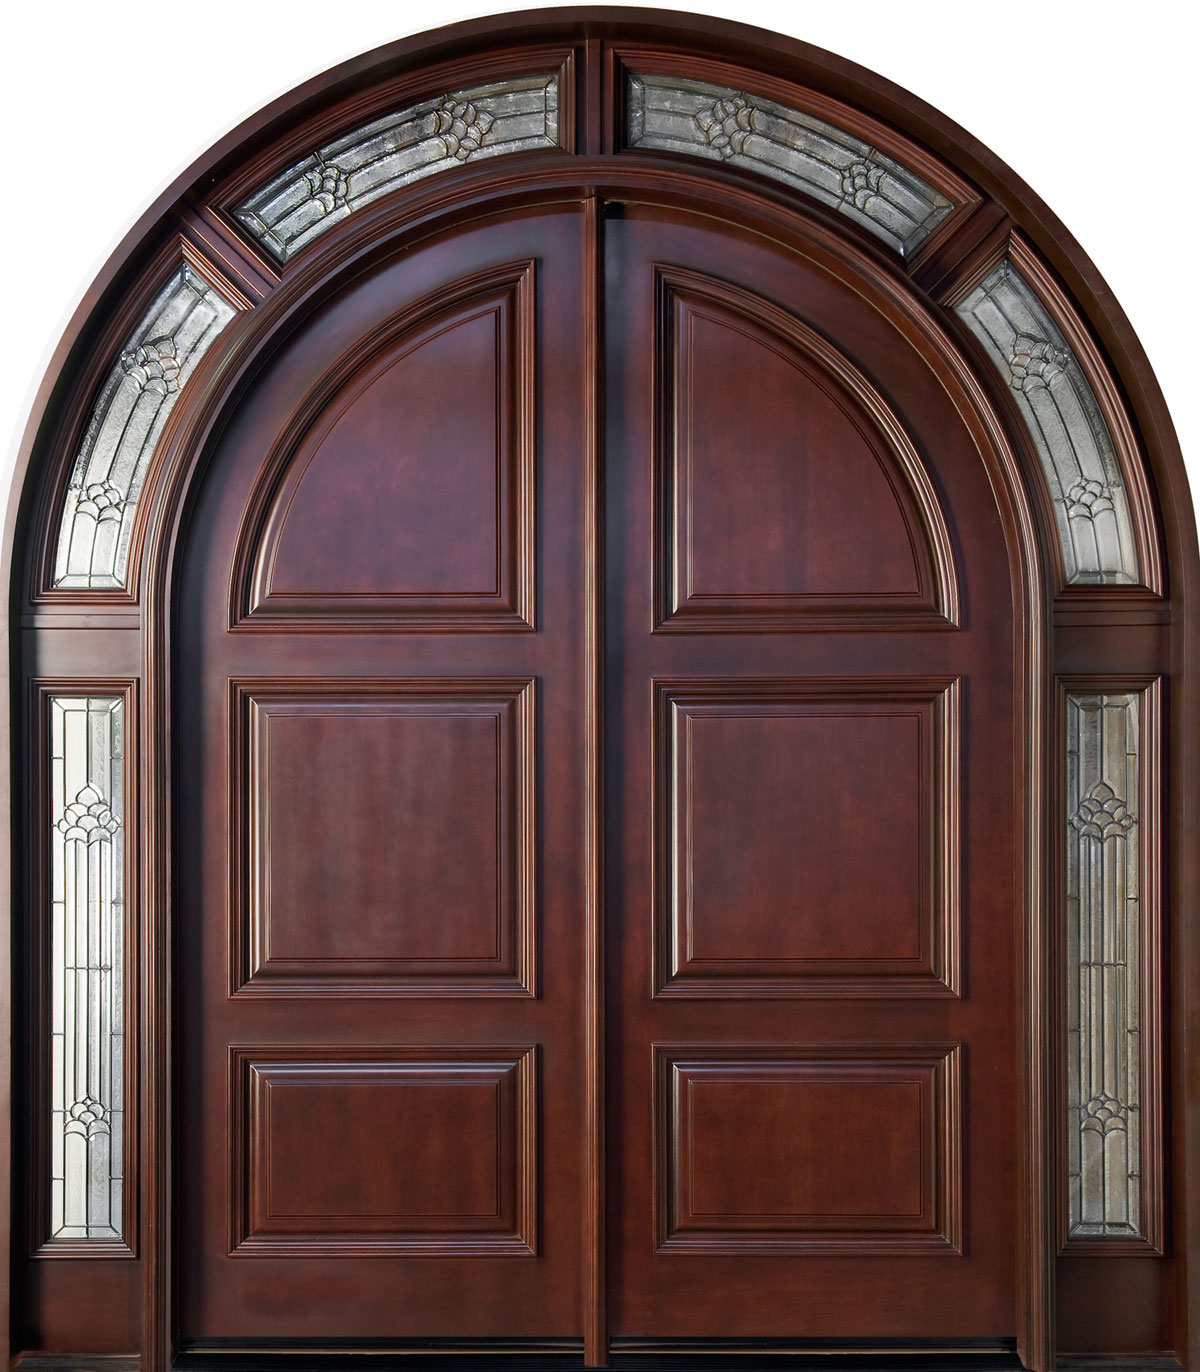 Image of: front door arch designs